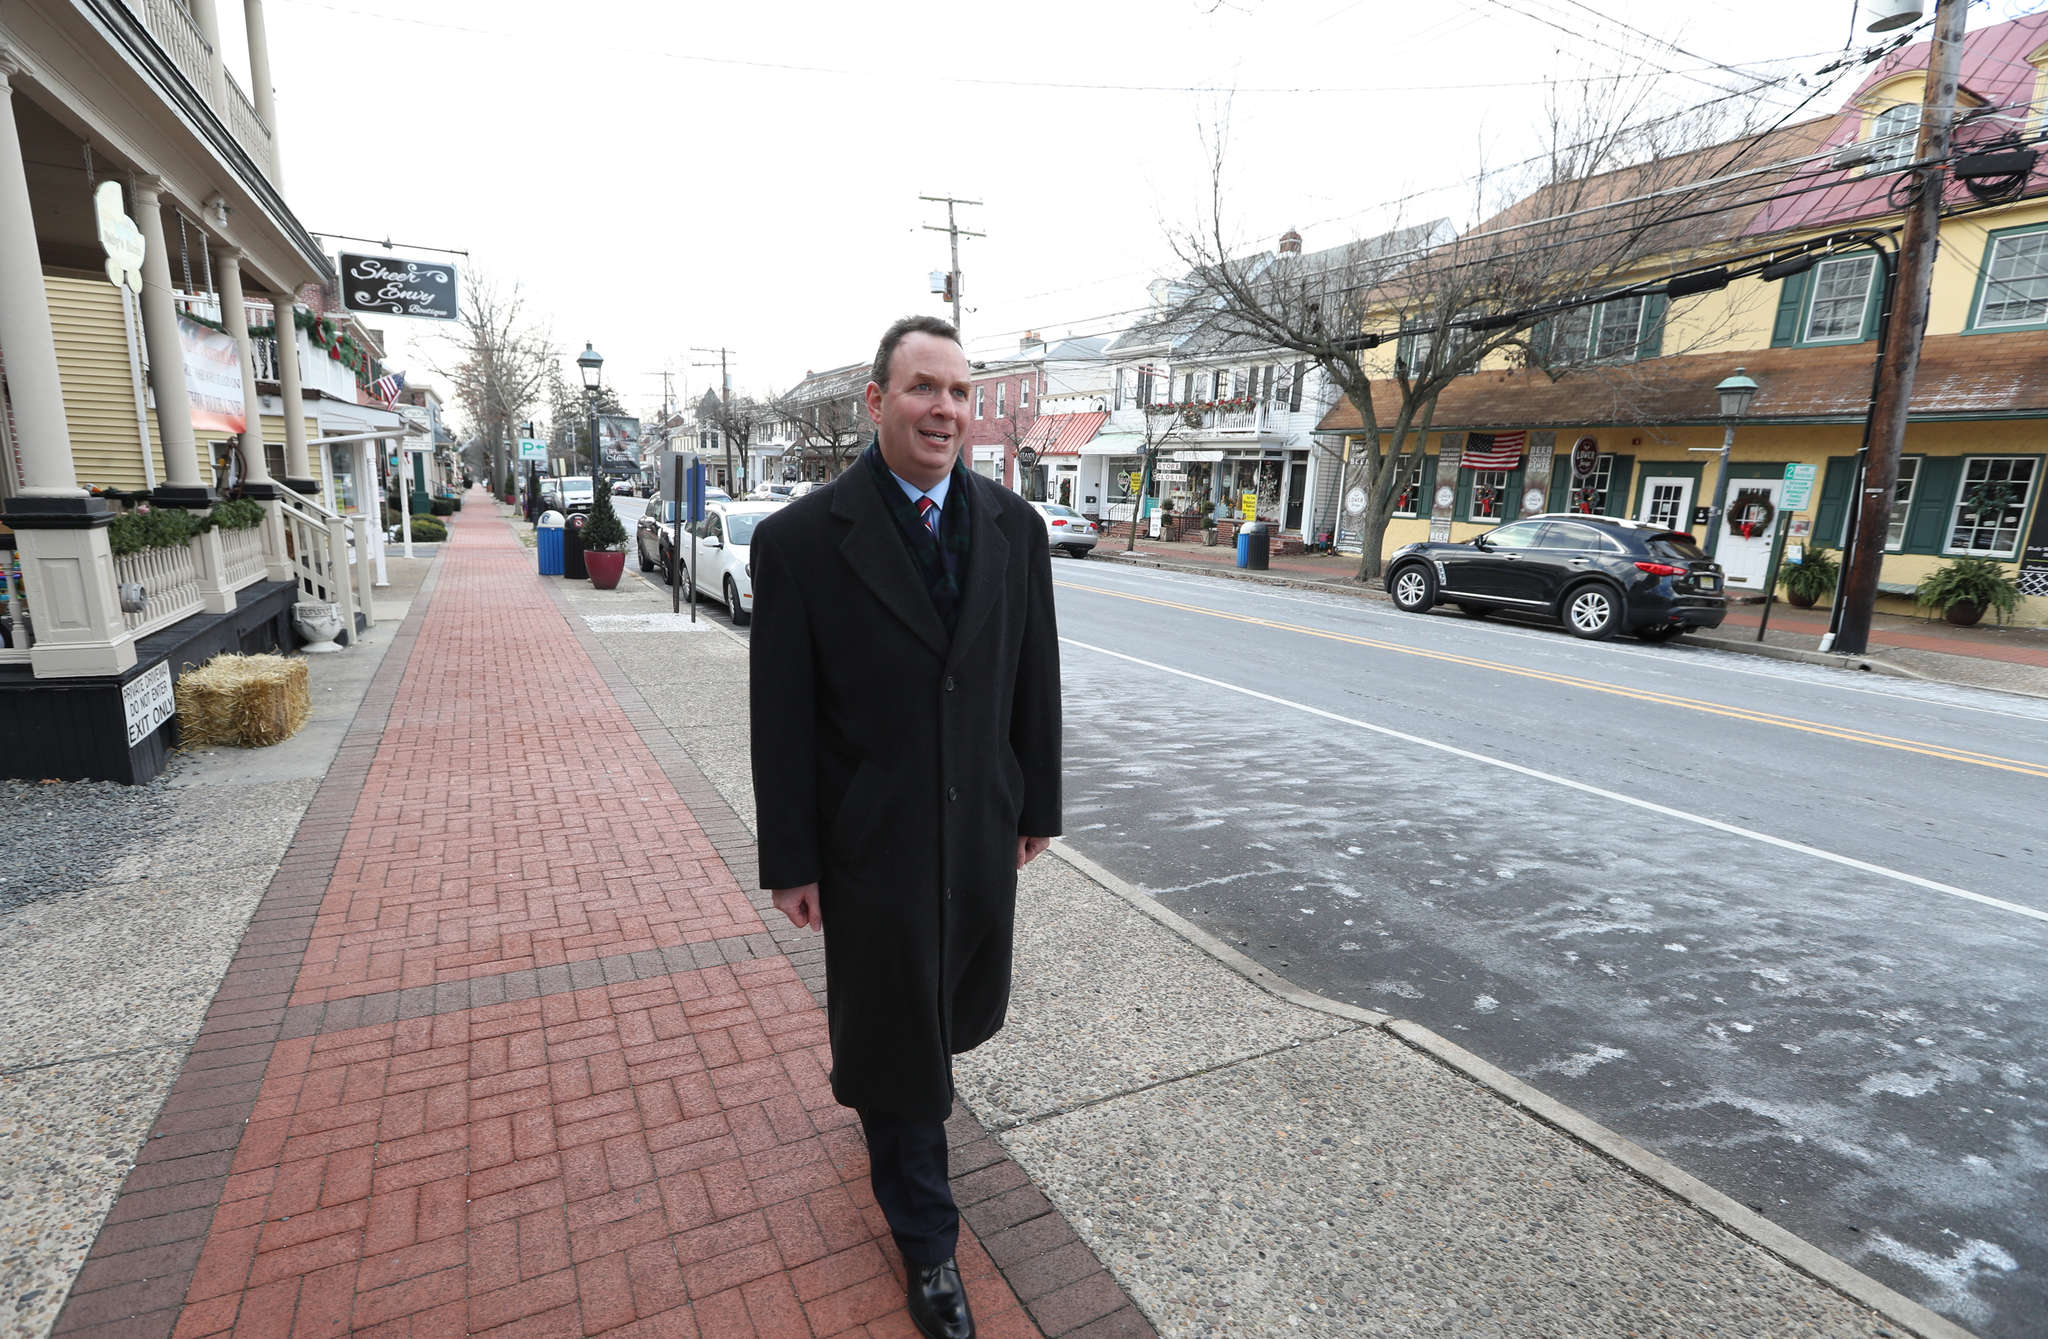 """""""We want to bring in businesses that really draw people and make it a place where people gather,"""" Medford Mayor Jeff Beenstock says of """"The Village,"""" a downtown commercial area."""